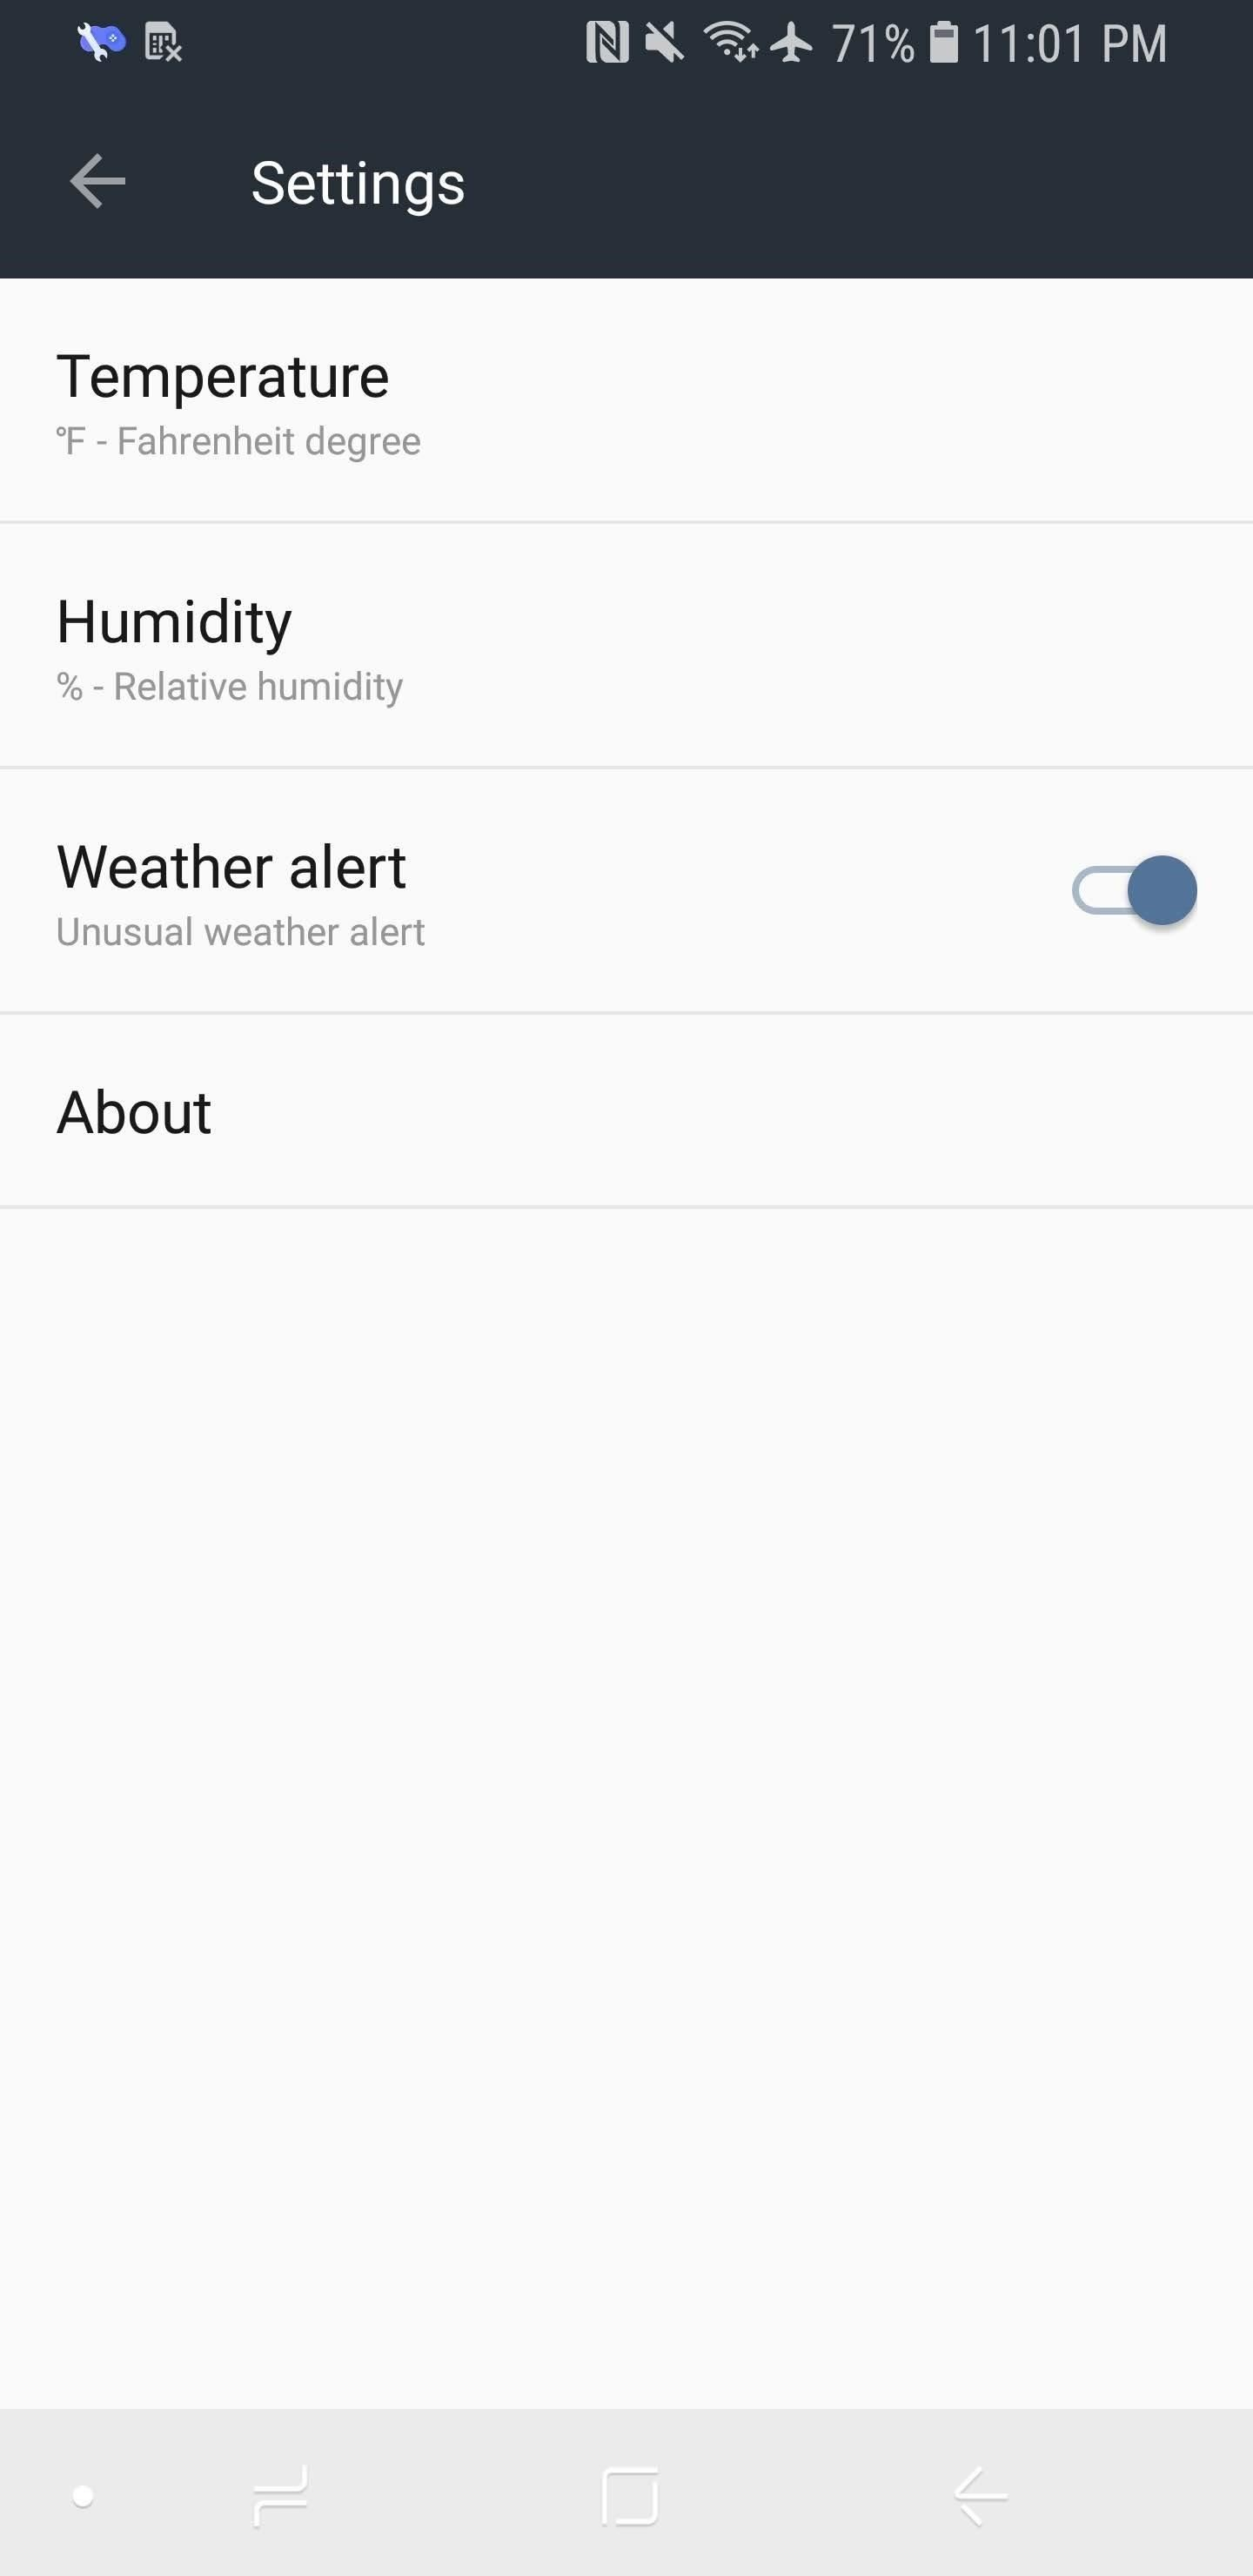 How to Get OnePlus' Gorgeous Weather App on Any Phone